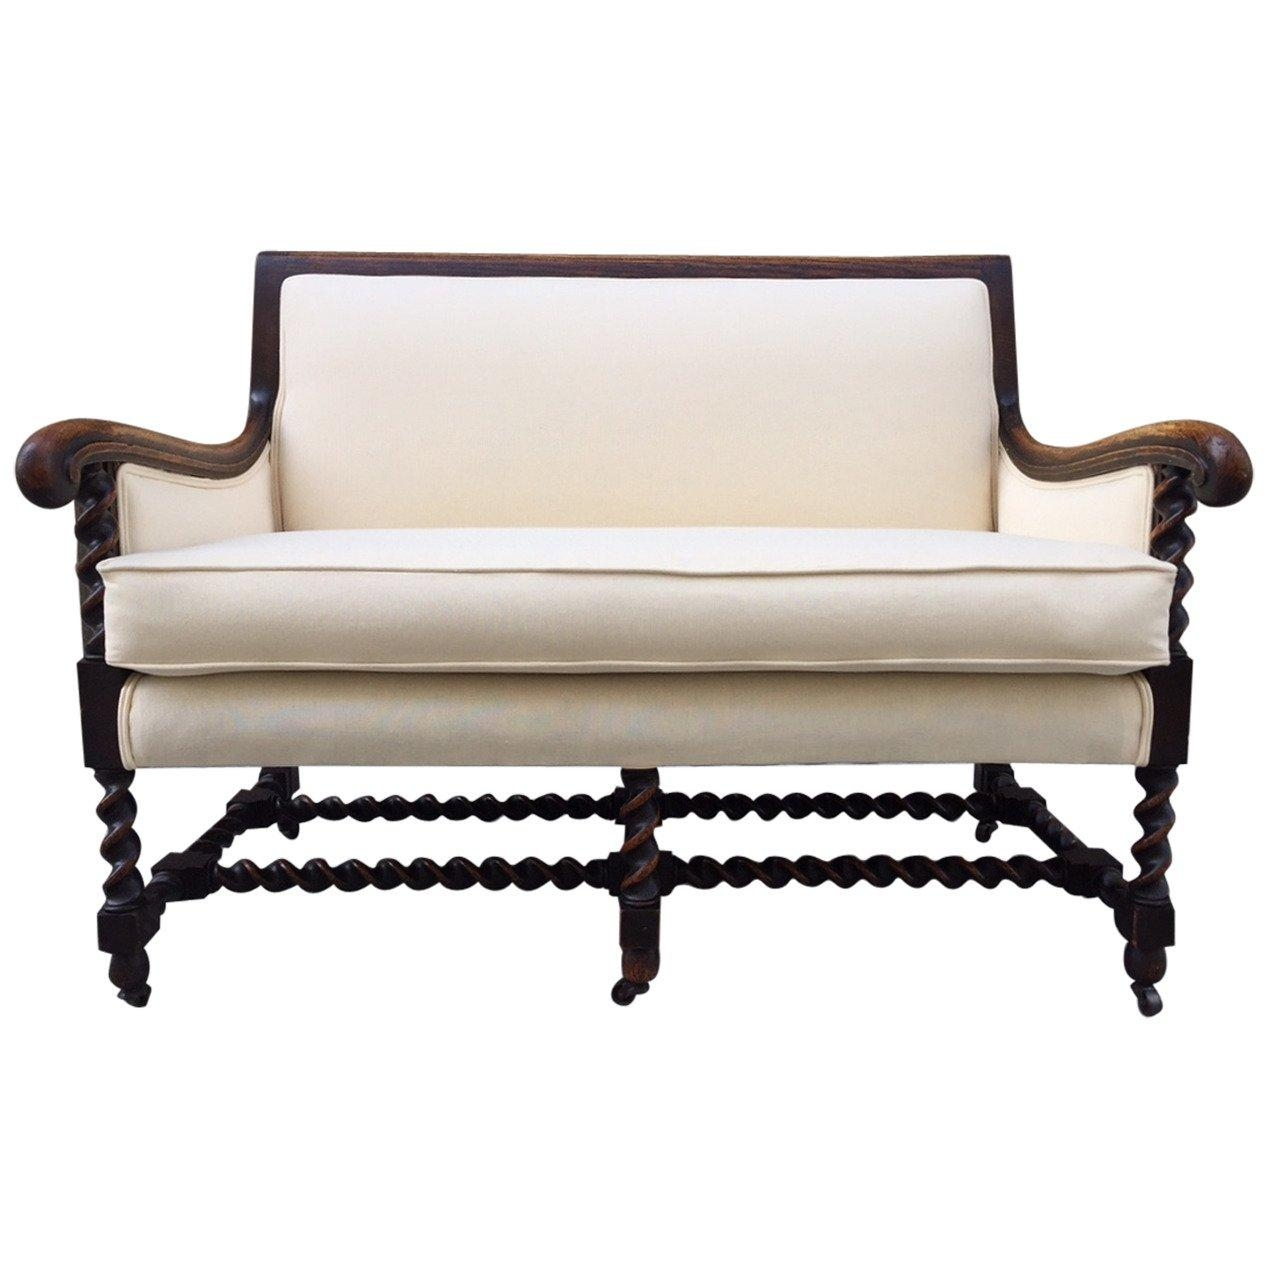 English Sofas – 137 For Sale At 1Stdibs Inside Chintz Sofa Beds (Image 9 of 20)